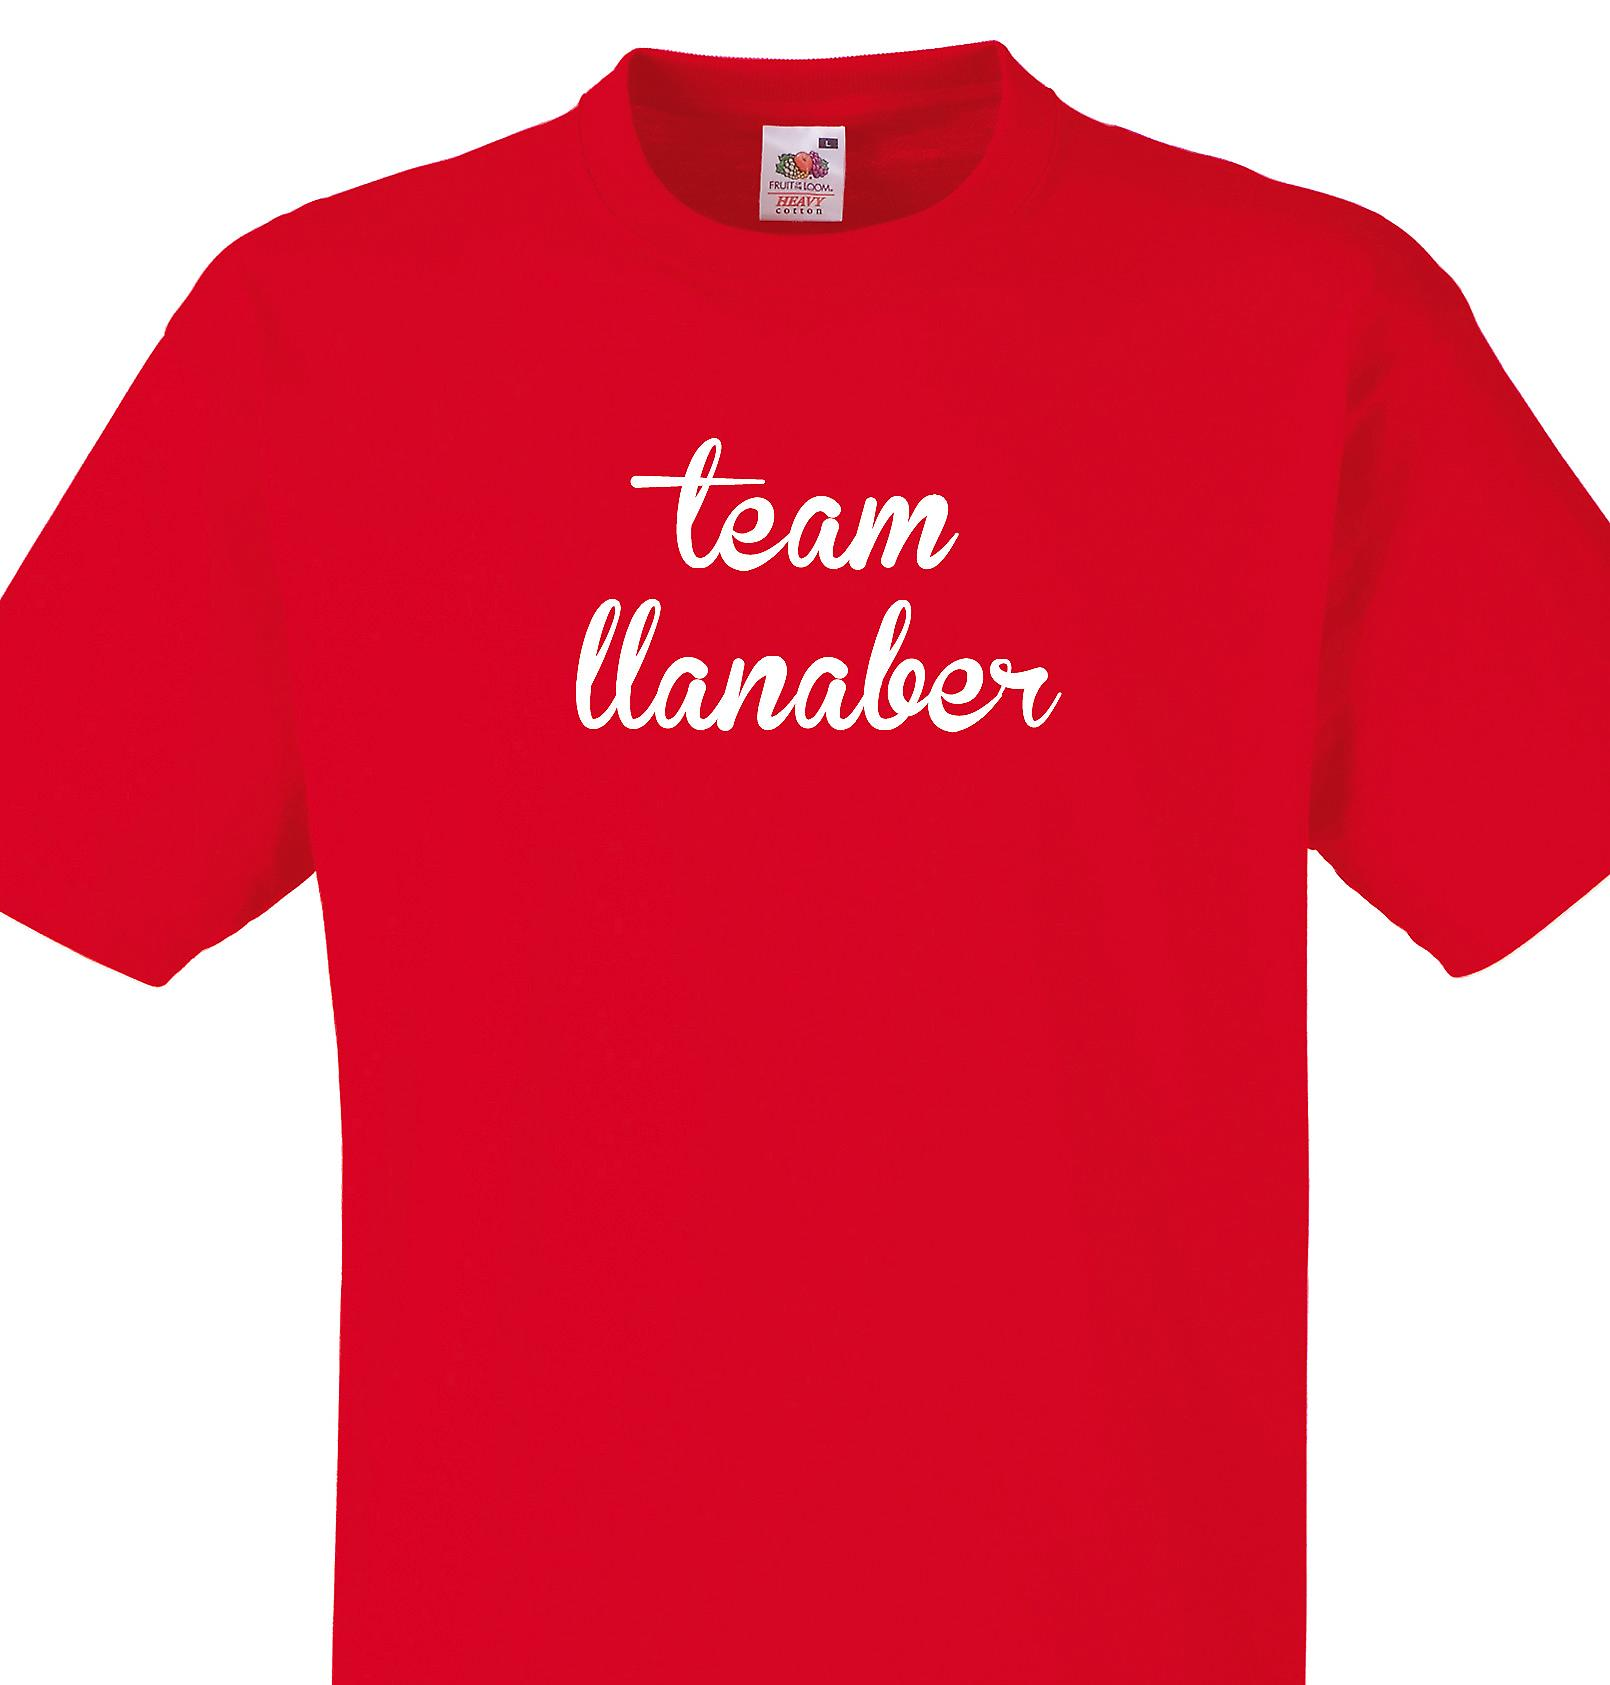 Team Llanaber Red T shirt